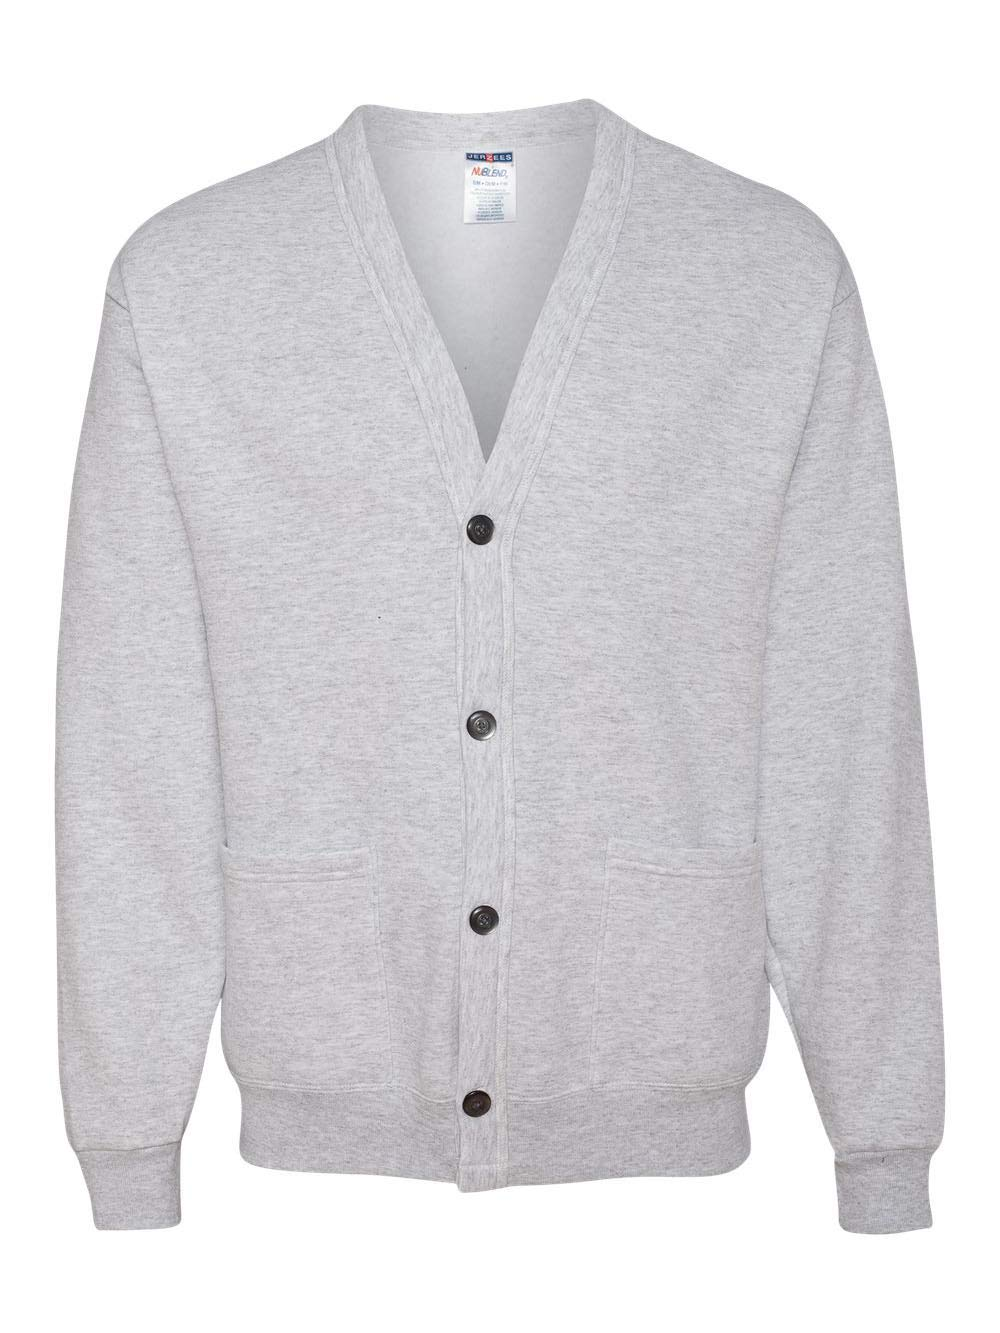 Jerzees mens 8 oz. 50/50 NuBlend Cardigan(773M)-ASH-L/XL